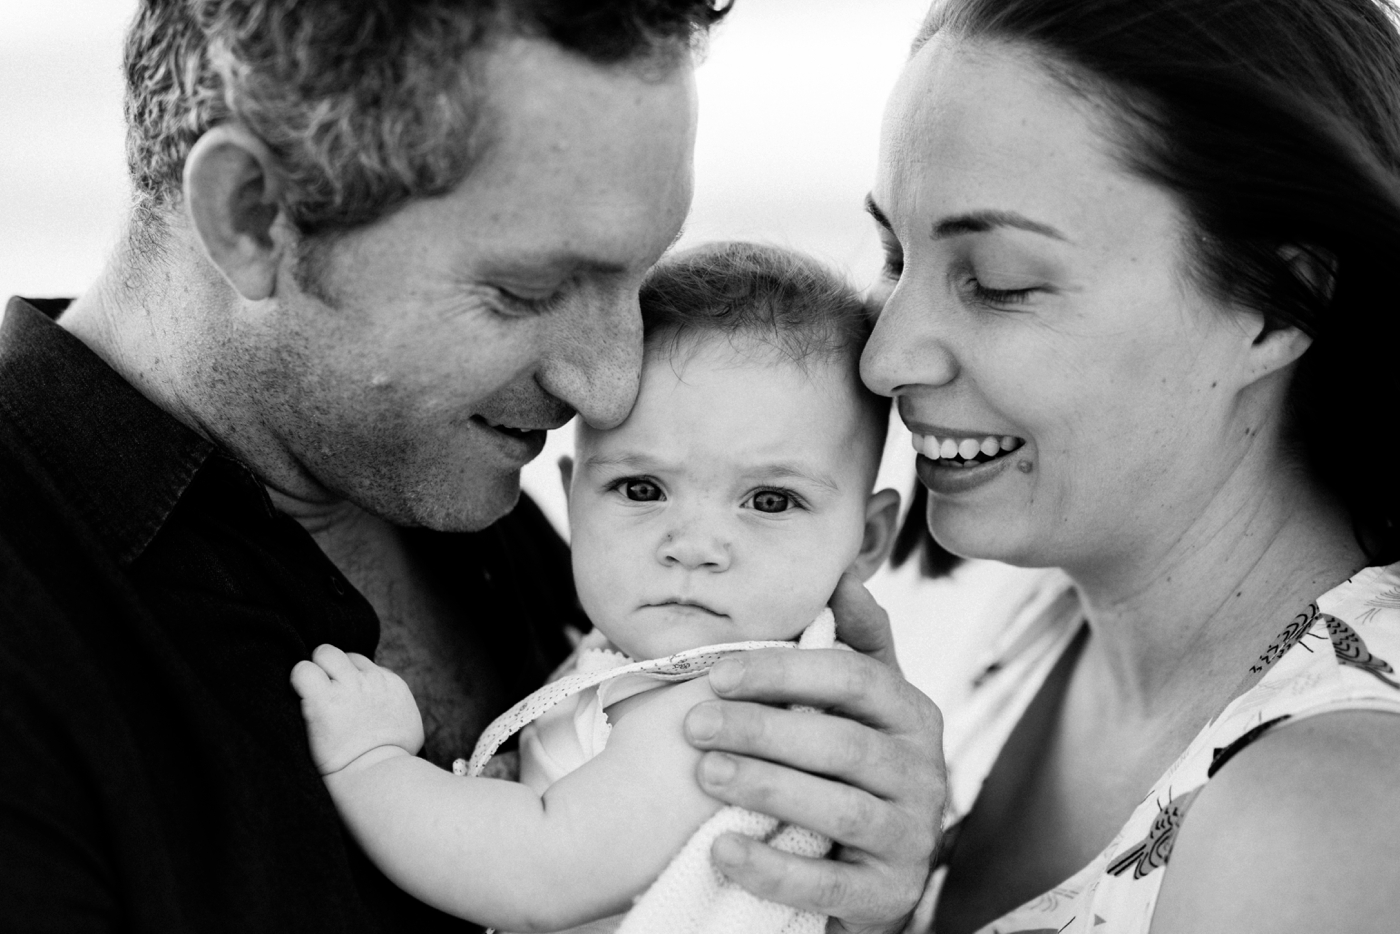 The Baillard Family - Perth Family Photographer - Perth family photography - Natural family photographer in Perth - Katherine Schultz - www.katherineschultzphotography.com 4